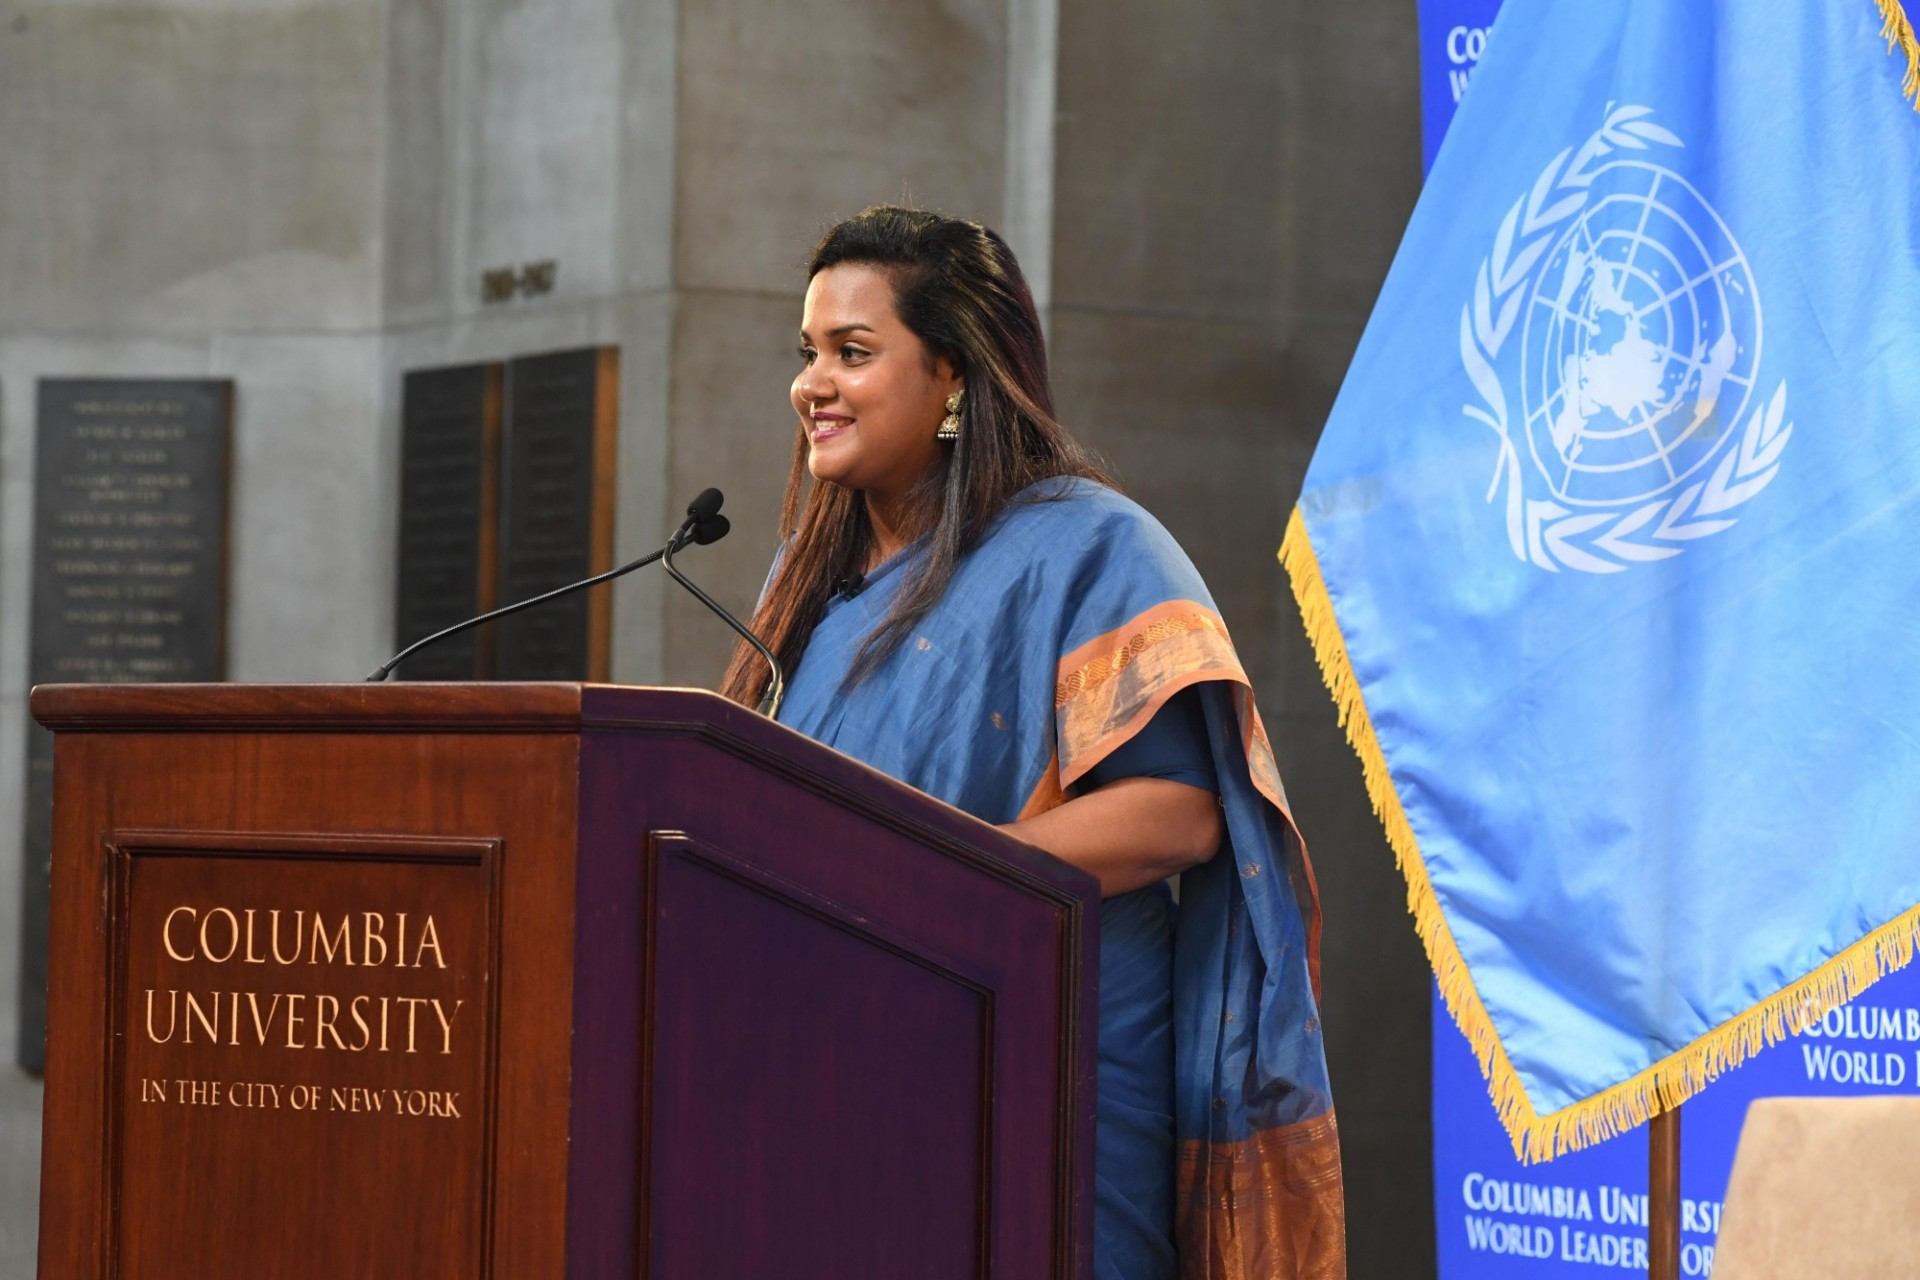 Jayathma Wickramanayake, UN Secretary-General's Envoy on Youth delivers her address to Columbia University students, faculty and staff.